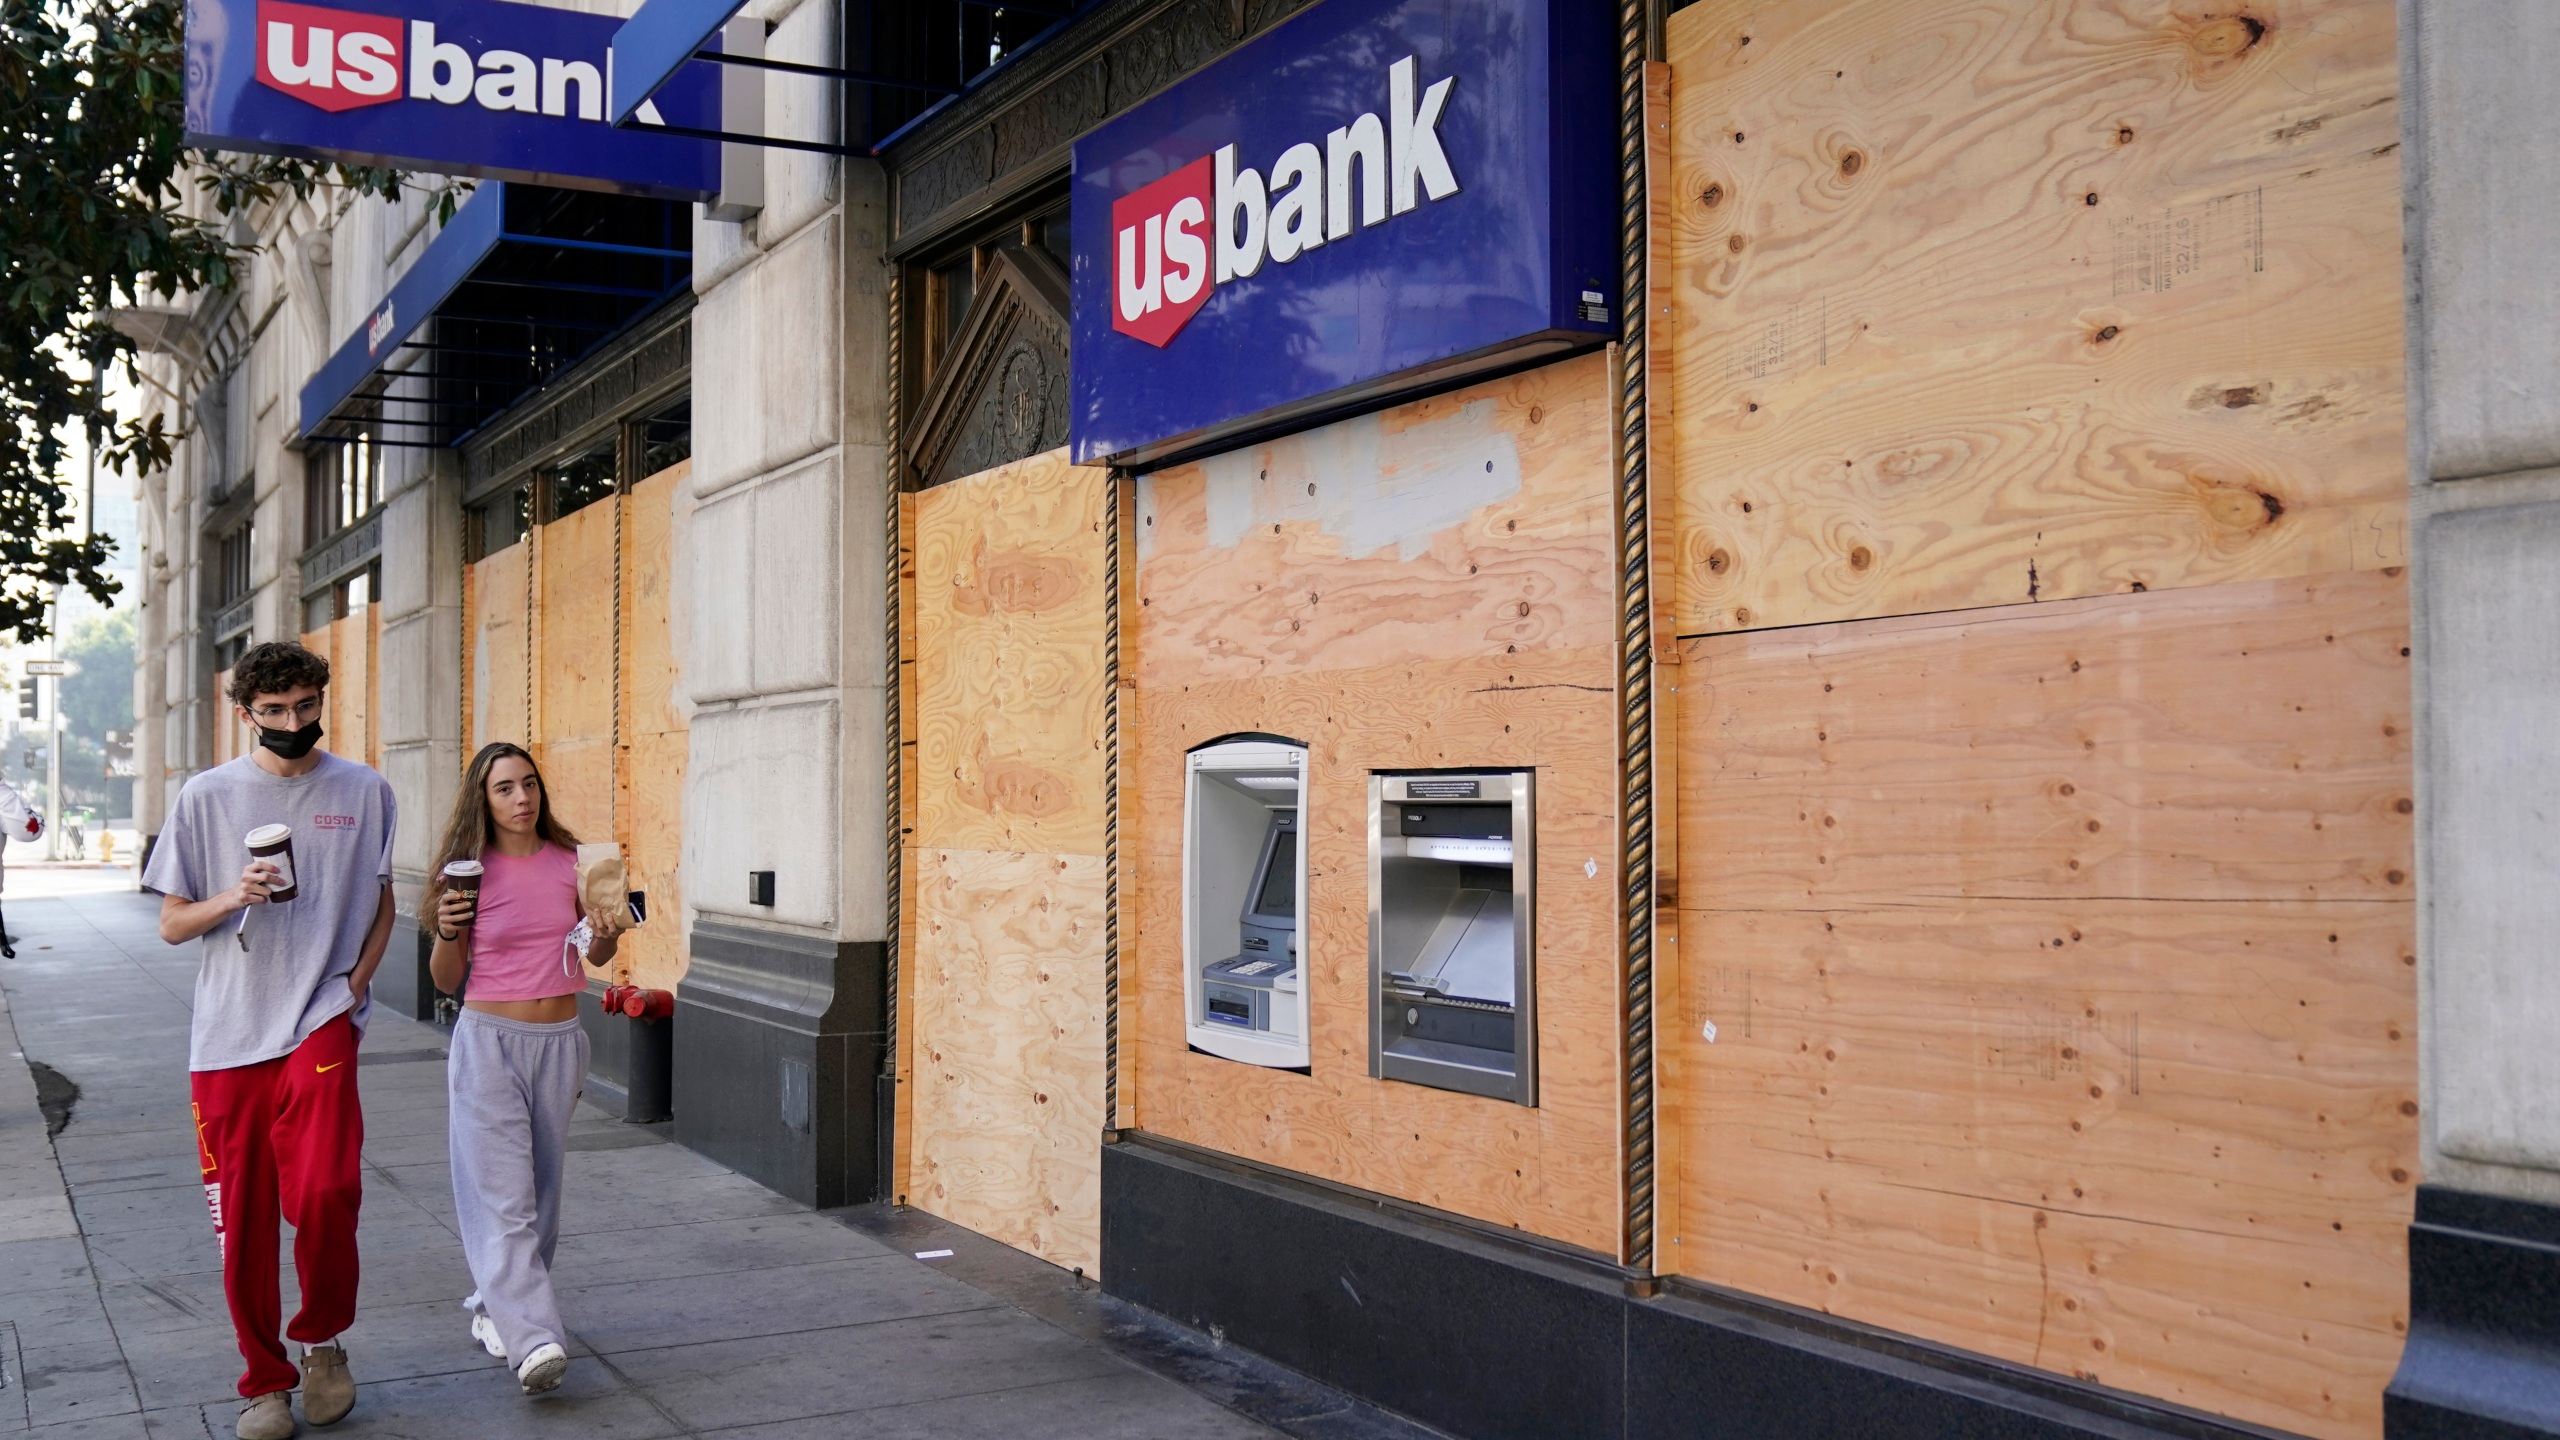 Pedestrians walk past an ATM at a boarded up US Bank branch, Monday, Nov. 2, 2020, in downtown Los Angeles. (AP Photo/Chris Pizzello)